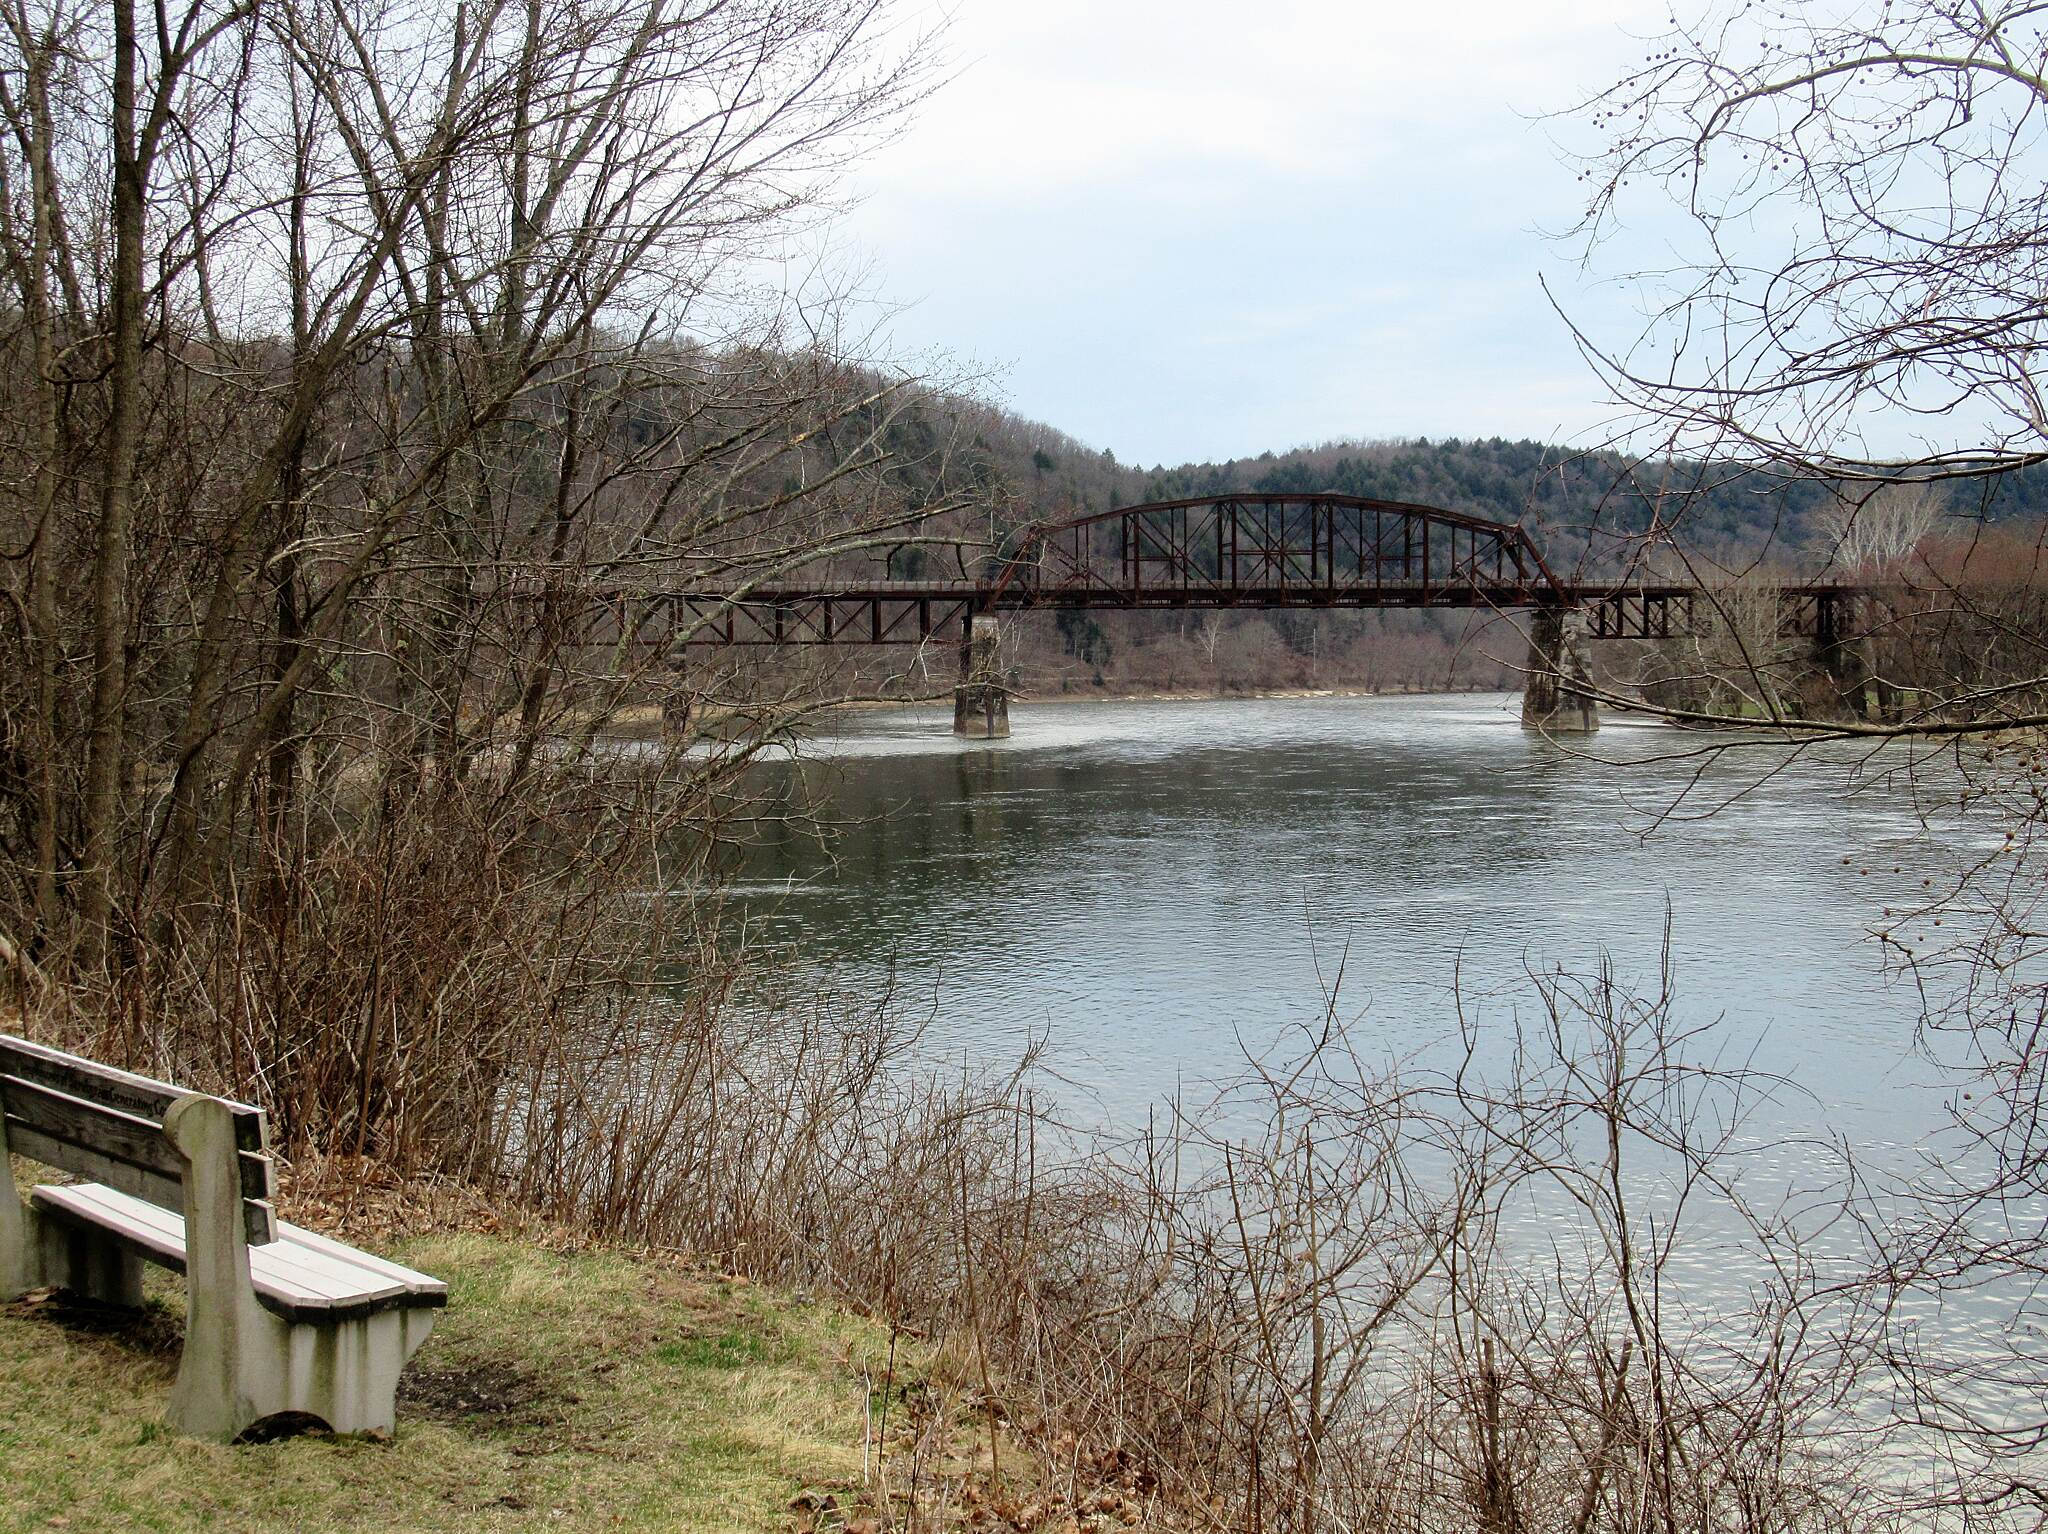 Allegheny River Trail View of the Belmar Bridge  Approx 5 miles South of Franklin you will see the Belmar Bridge